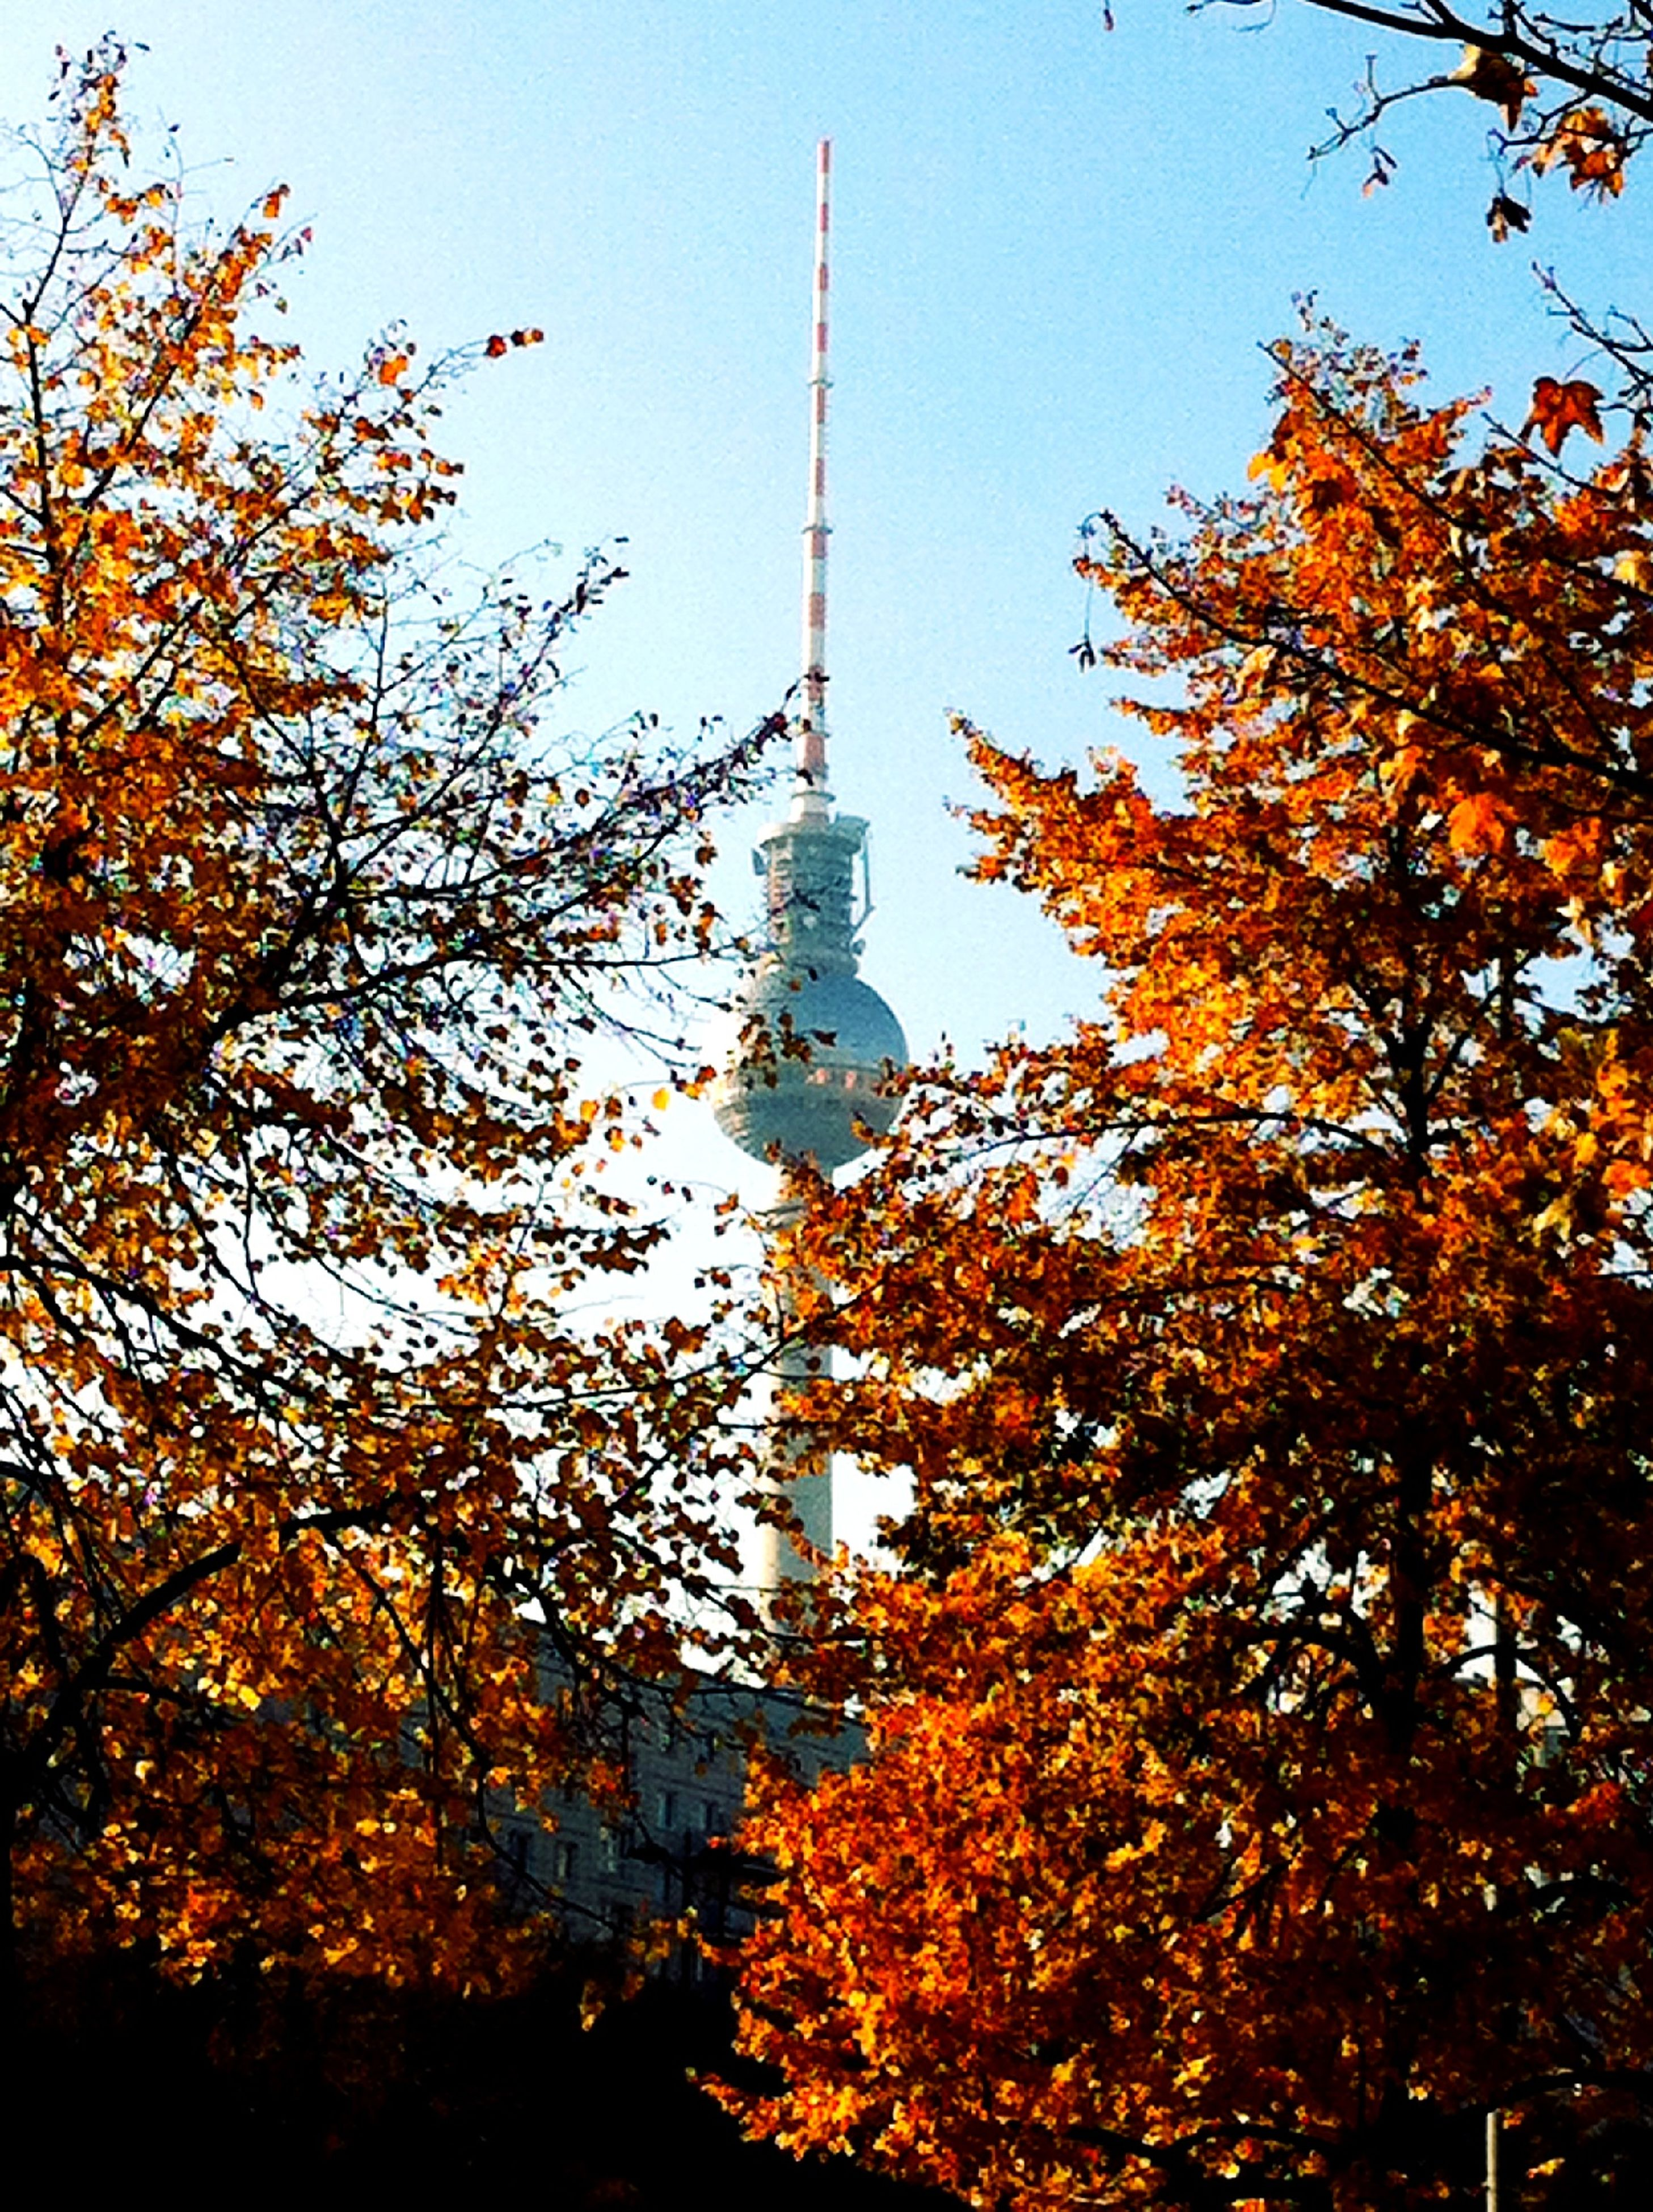 tree, building exterior, tower, architecture, built structure, clear sky, low angle view, tall - high, communications tower, spire, autumn, branch, travel destinations, season, famous place, city, growth, tourism, capital cities, travel